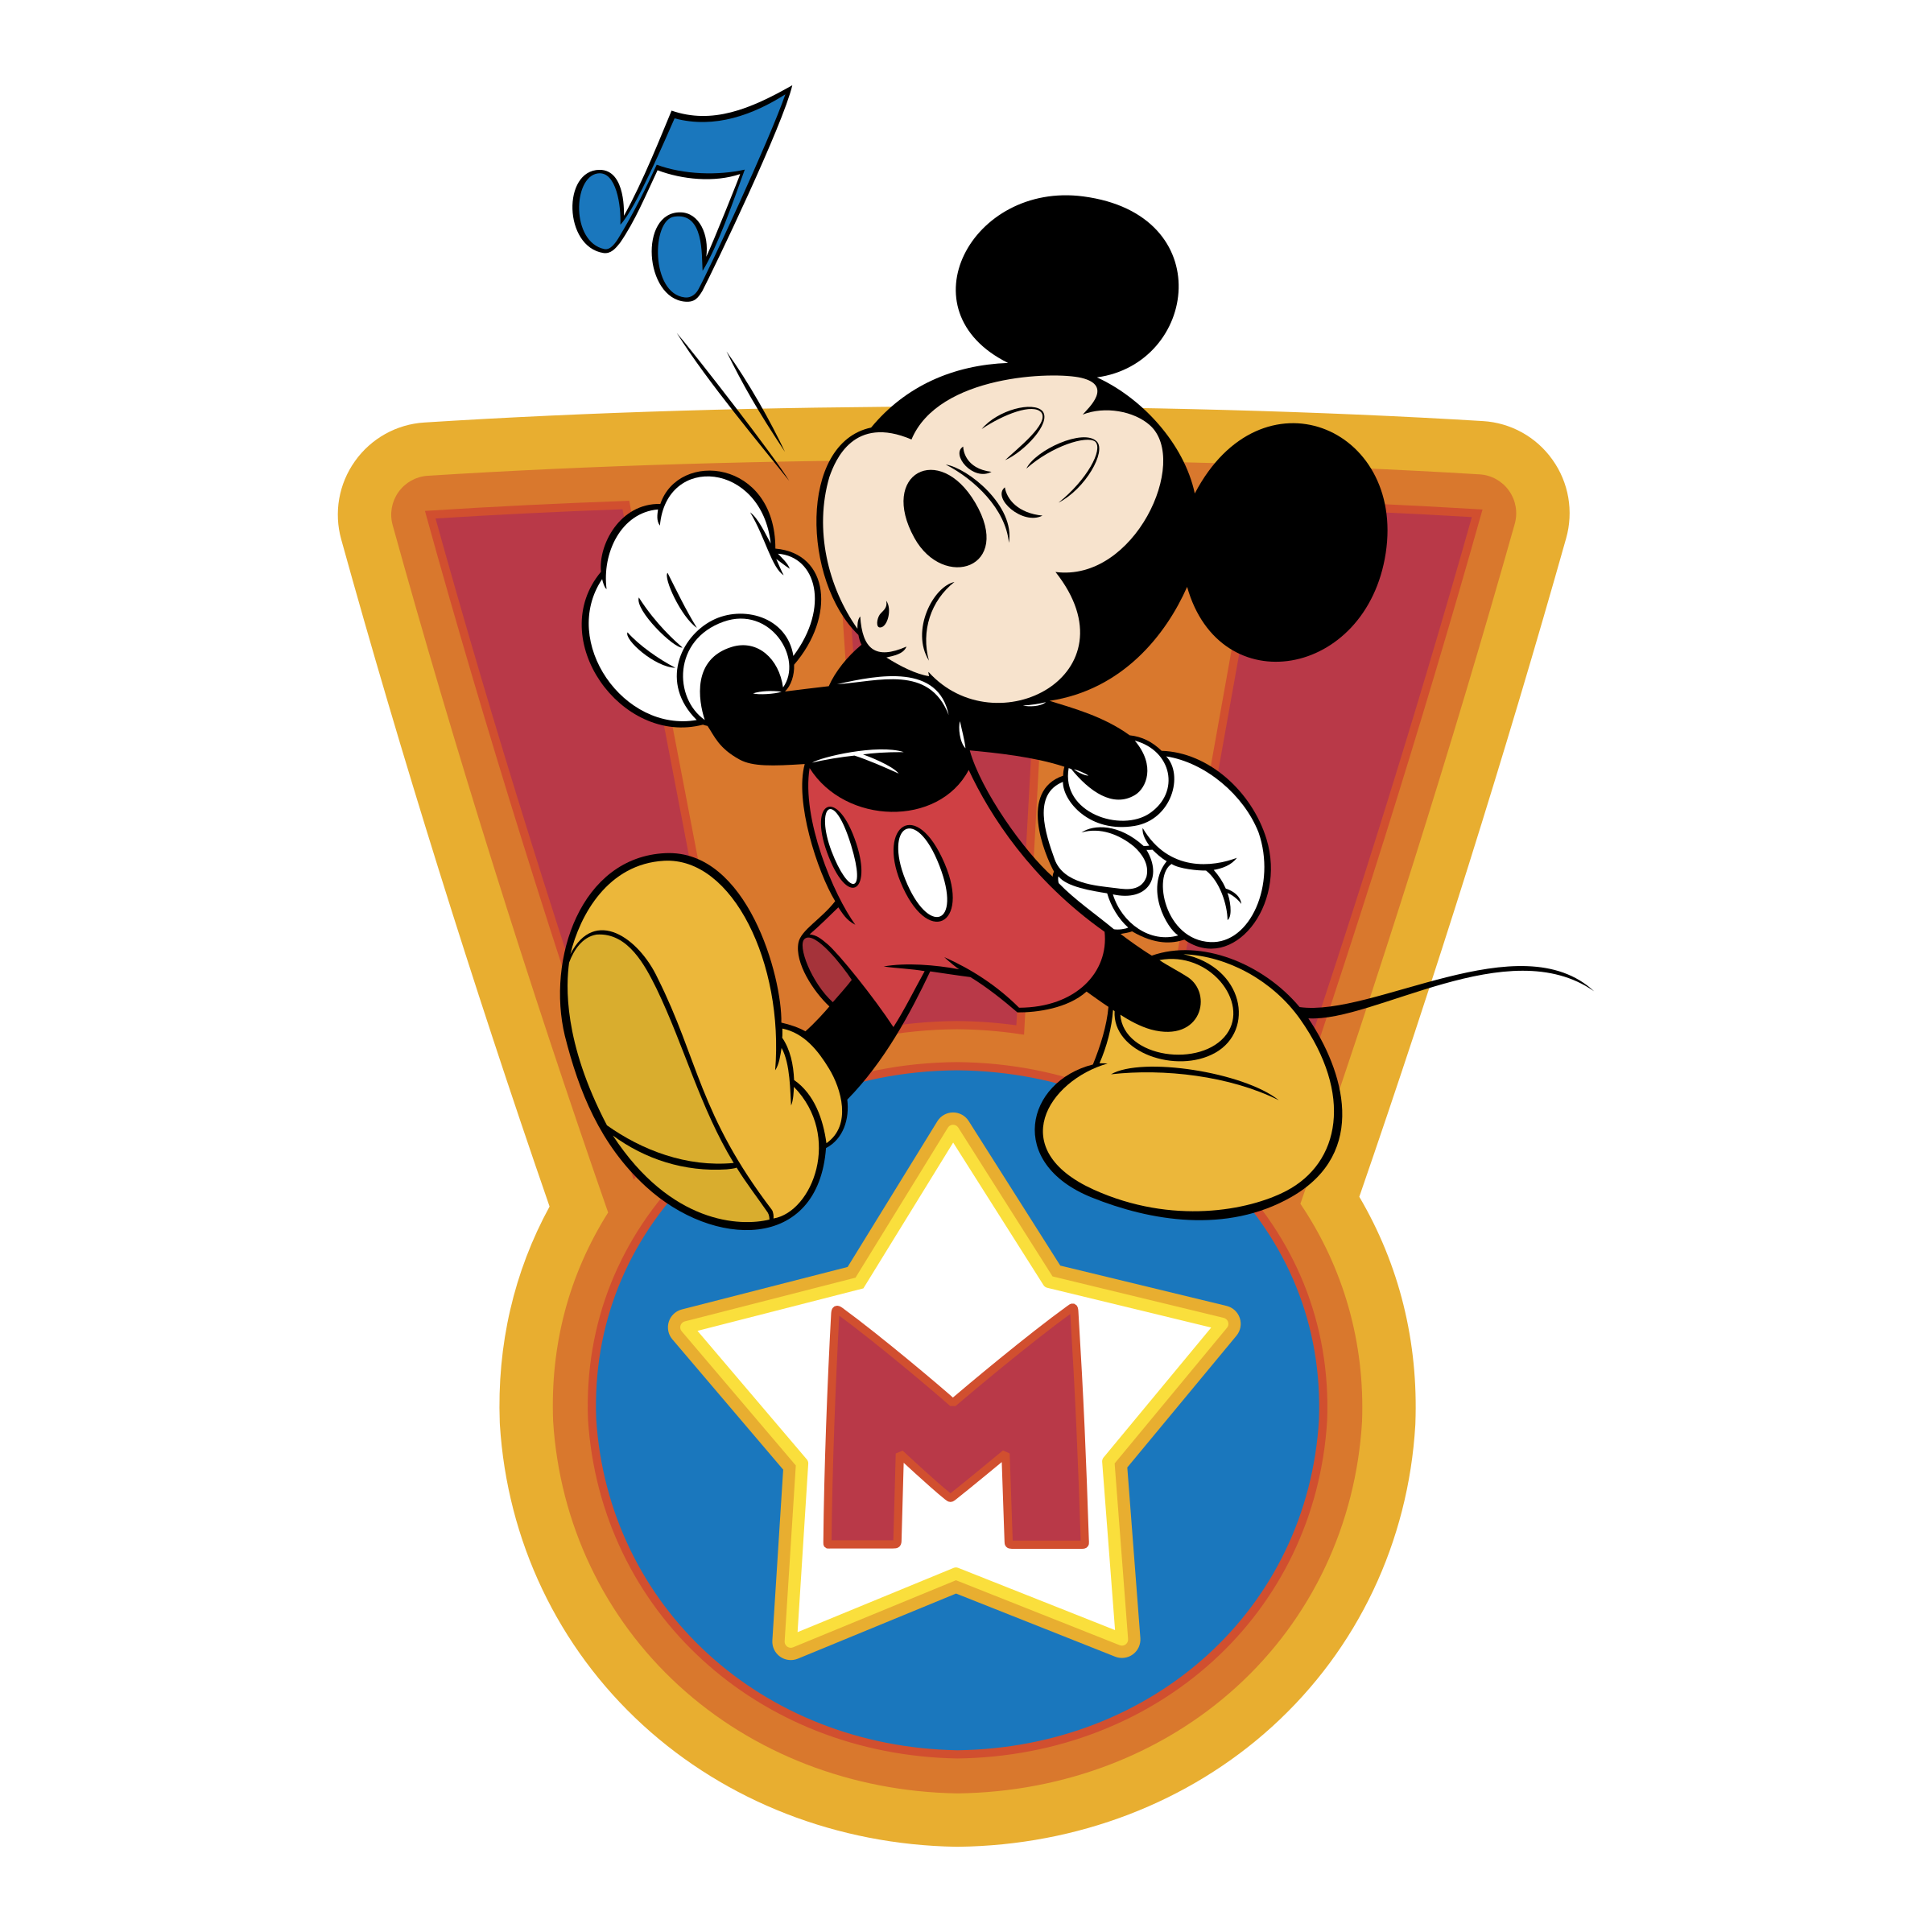 Mickey Mouse Logo 03 decal sticker